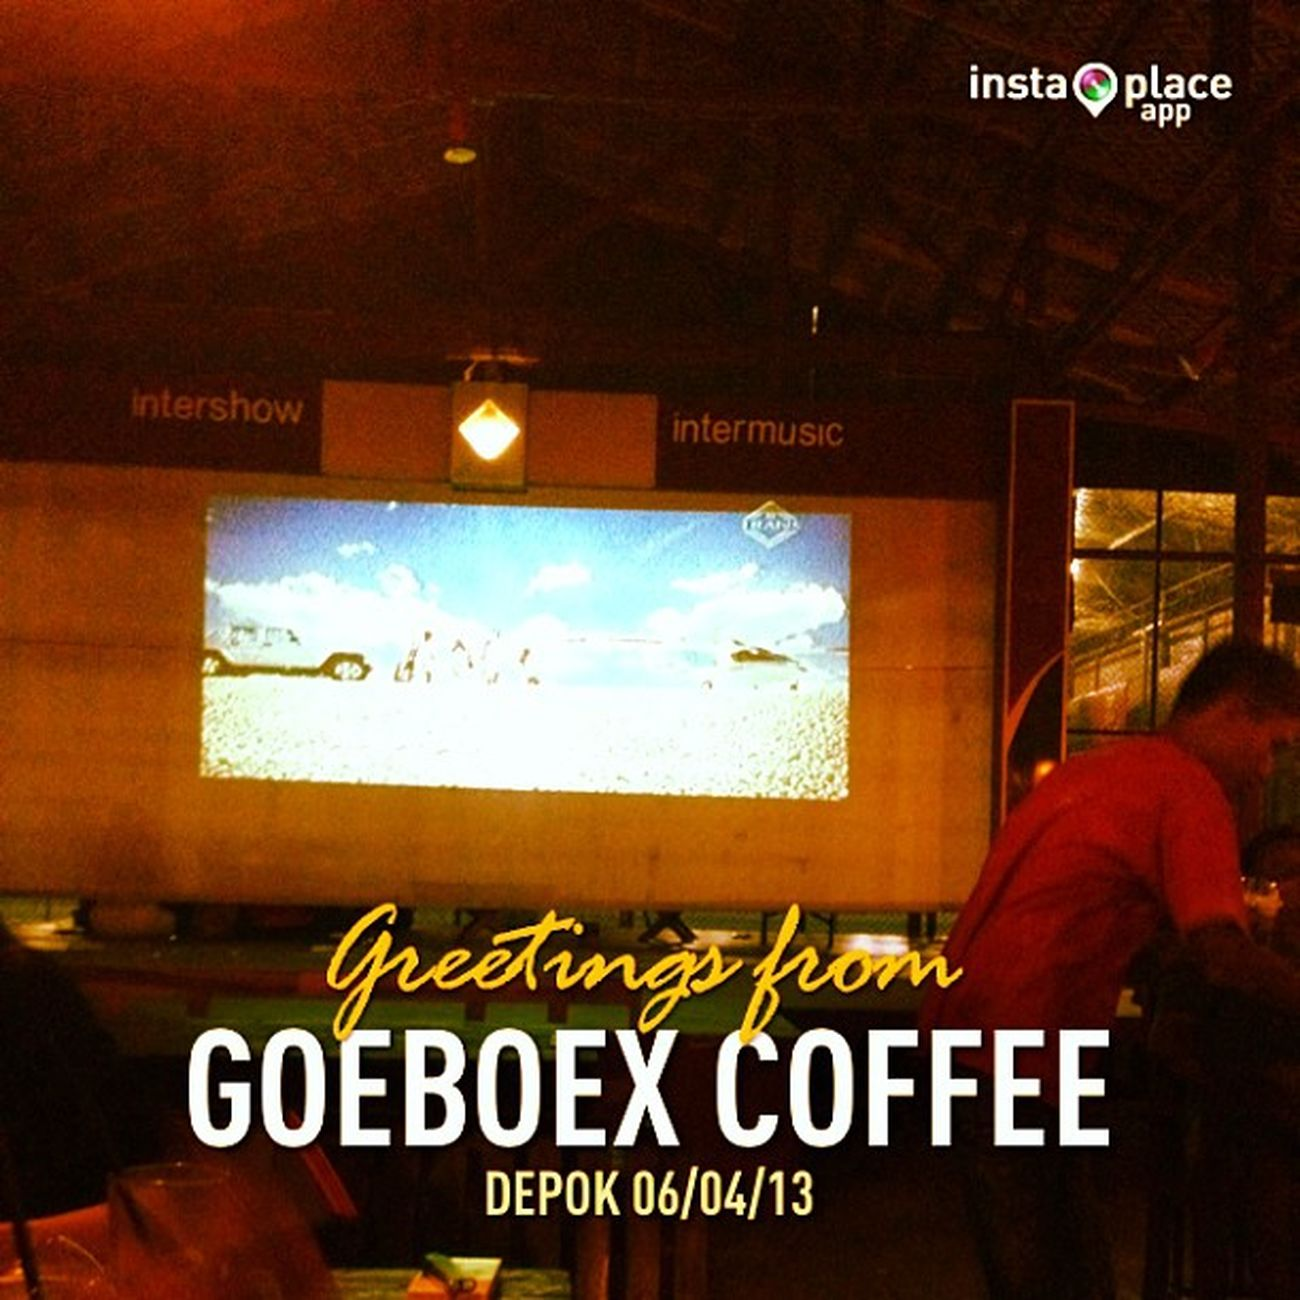 Jogja InstaPlace Instaplaceapp Instagood Travelgram Photooftheday Instamood Picoftheday Instadaily Photo Instacool Instapic Picture Pic @instaplacemobi Place Earth World INDONESIA Id Depok Goeboexcoffee Coffee Street Night